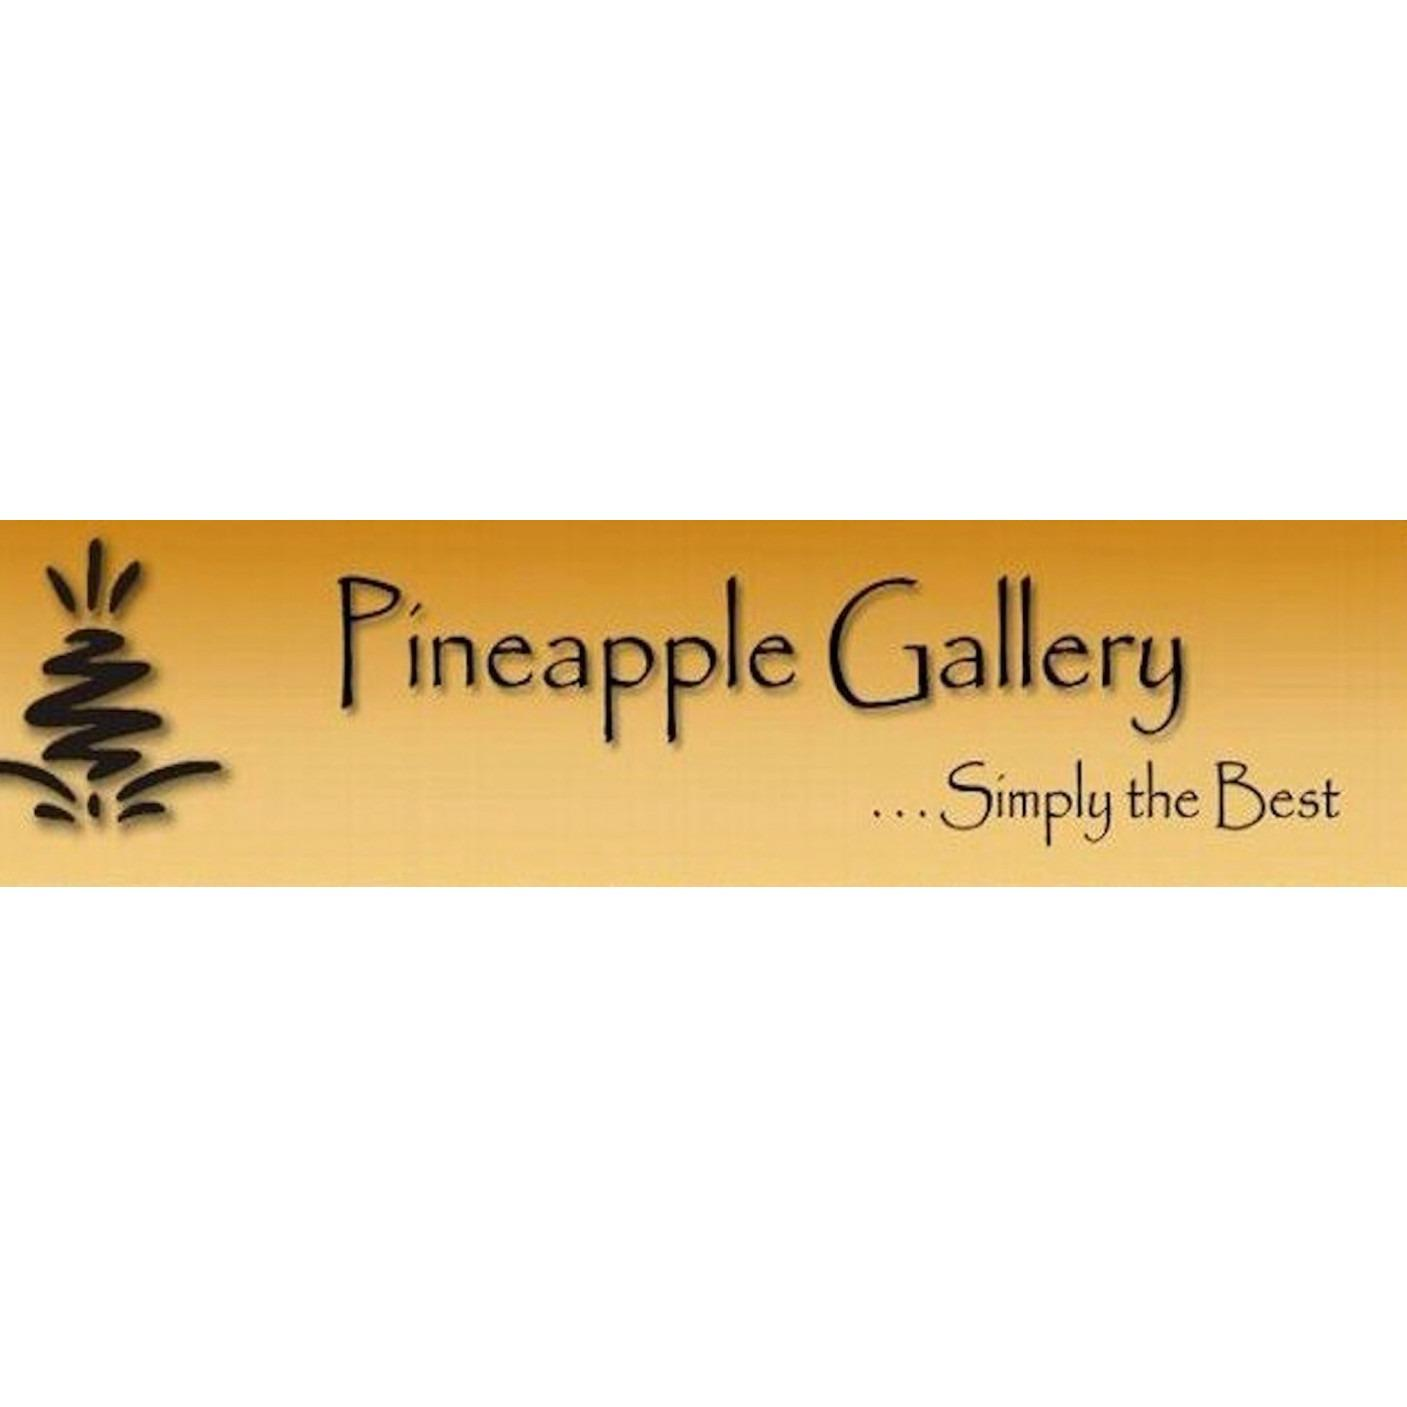 Pineapple Gallery image 14